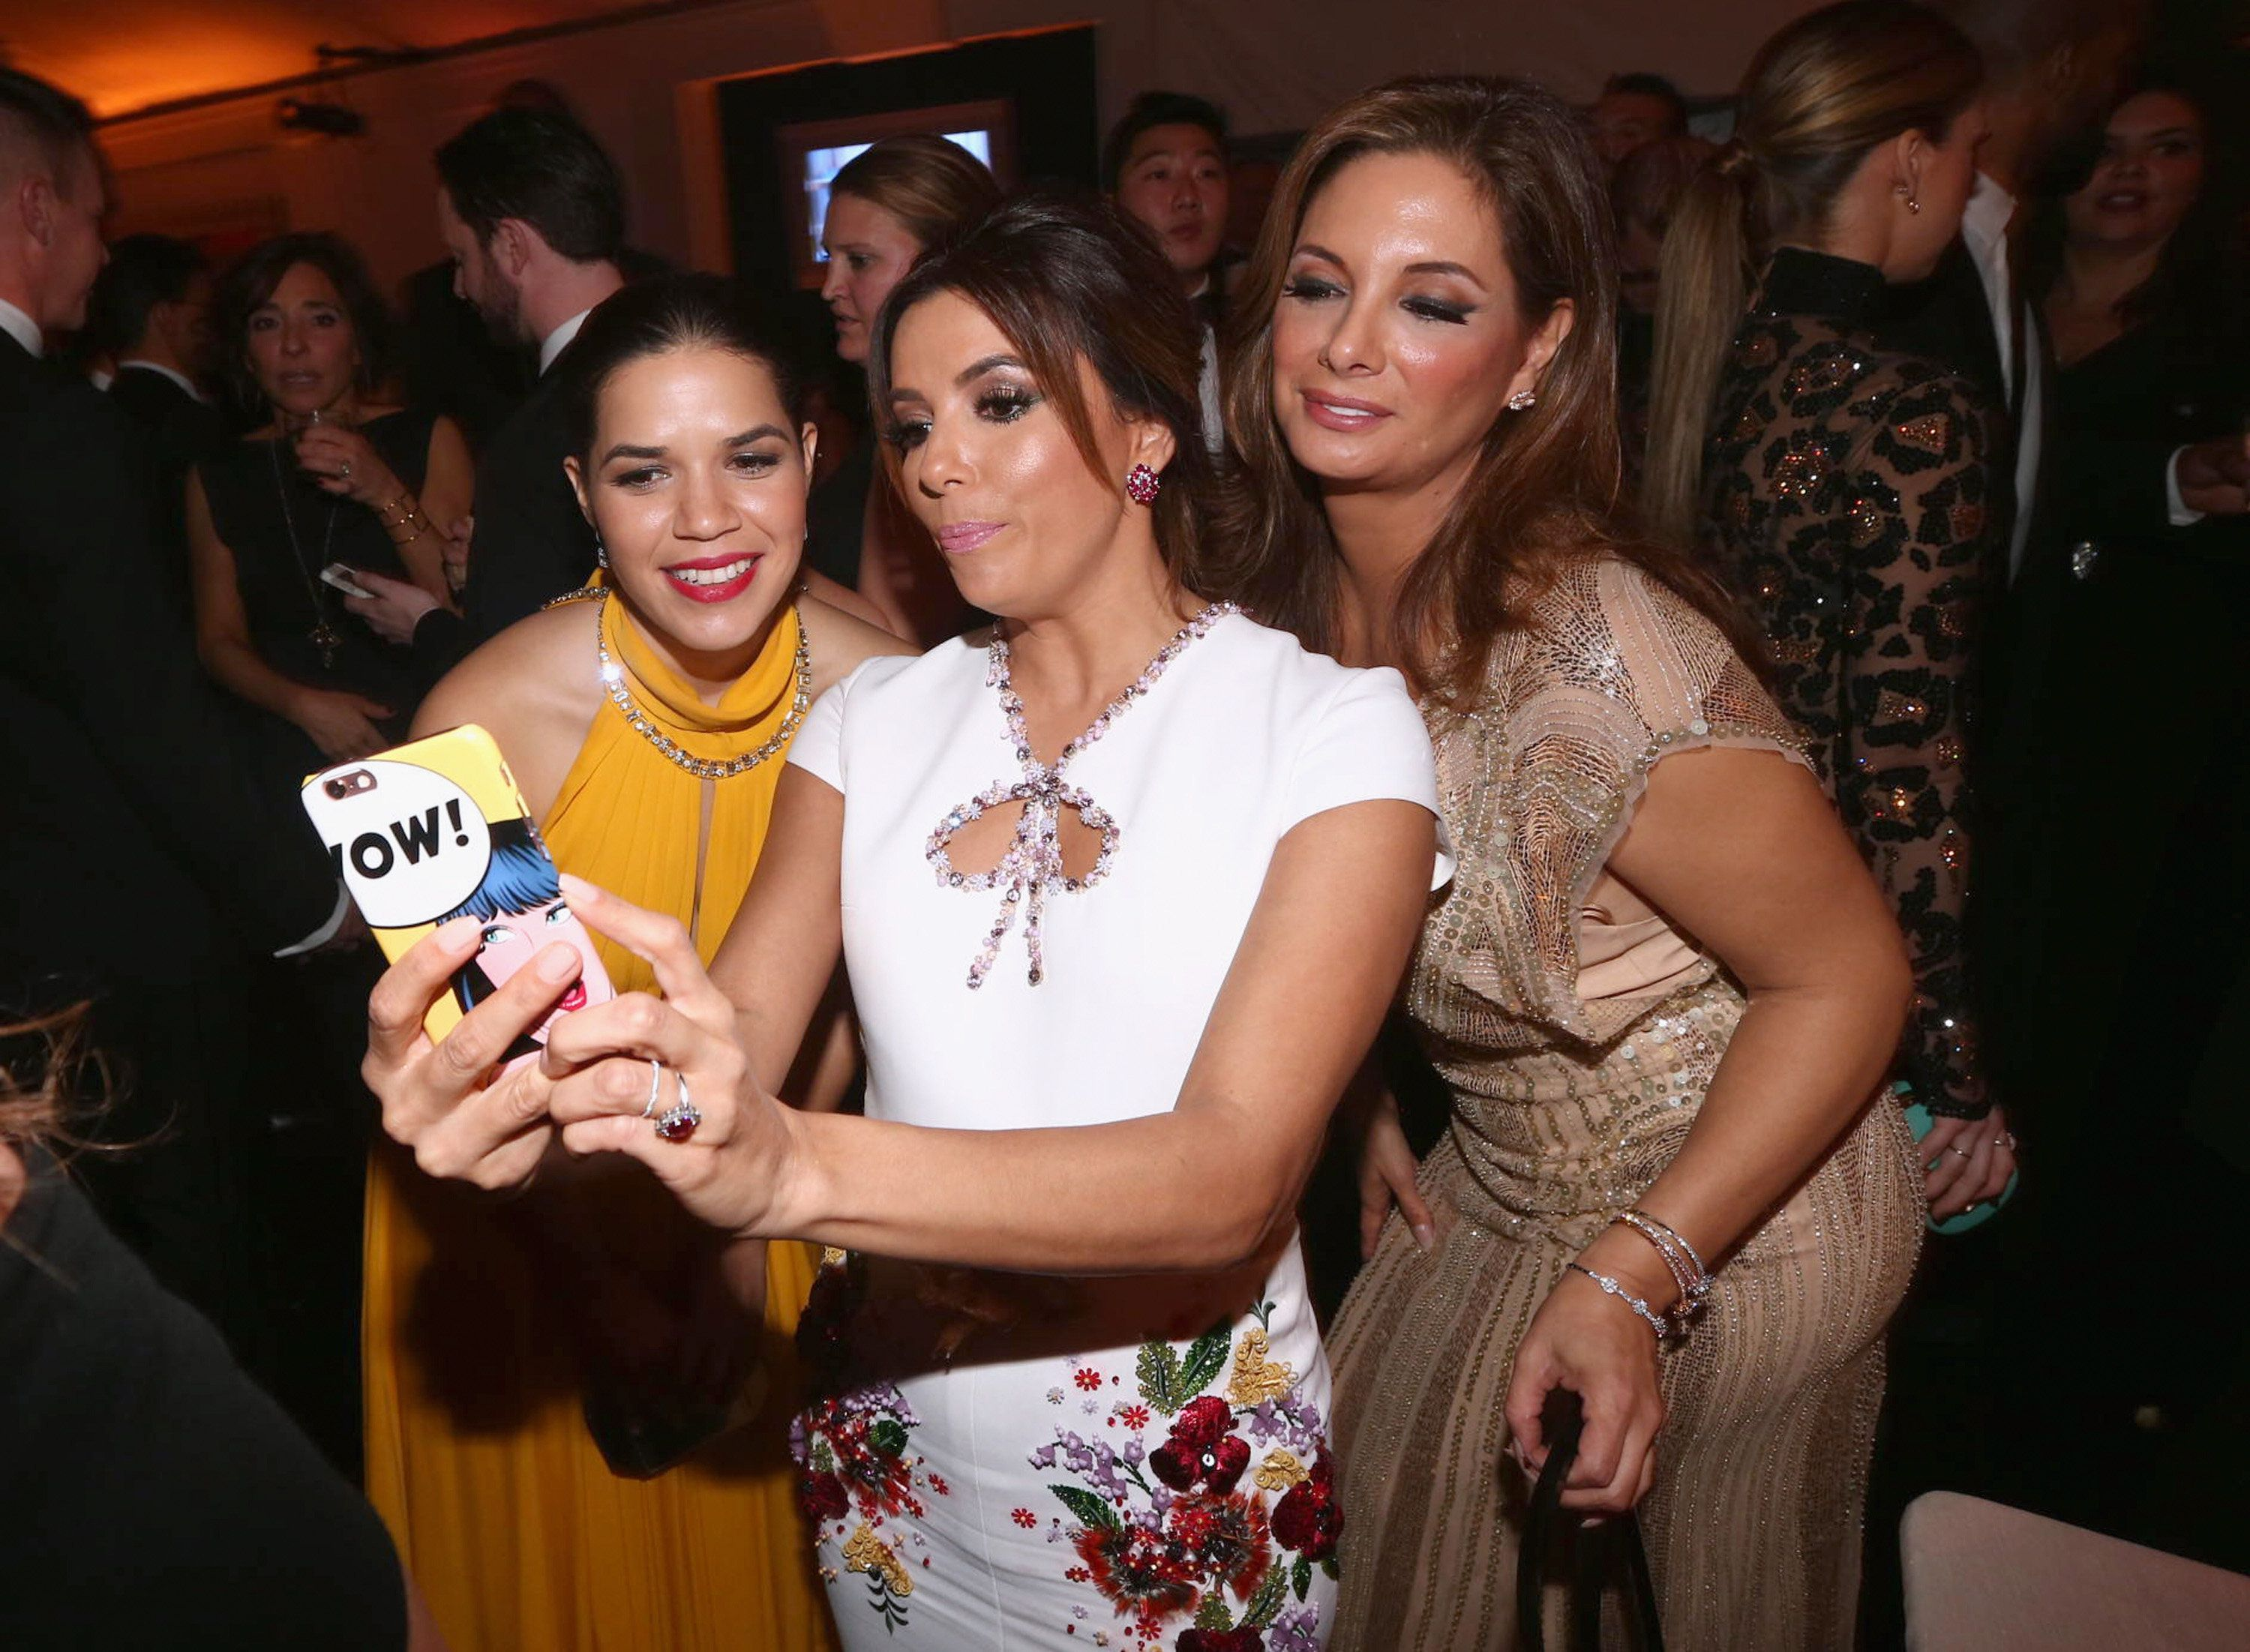 BEVERLY HILLS, CA - JANUARY 10:  73rd ANNUAL GOLDEN GLOBE AWARDS --  Pictured: (l-r) Actresses America Ferrera, Eva Longoria and Alex Meneses during NBCUniversal's Golden Globes Post-Party Sponsored by Chrysler held at the Beverly Hilton Hotel on January 10, 2016.  (Photo by Christopher Polk/NBC/NBCU Photo Bank via Getty Images)